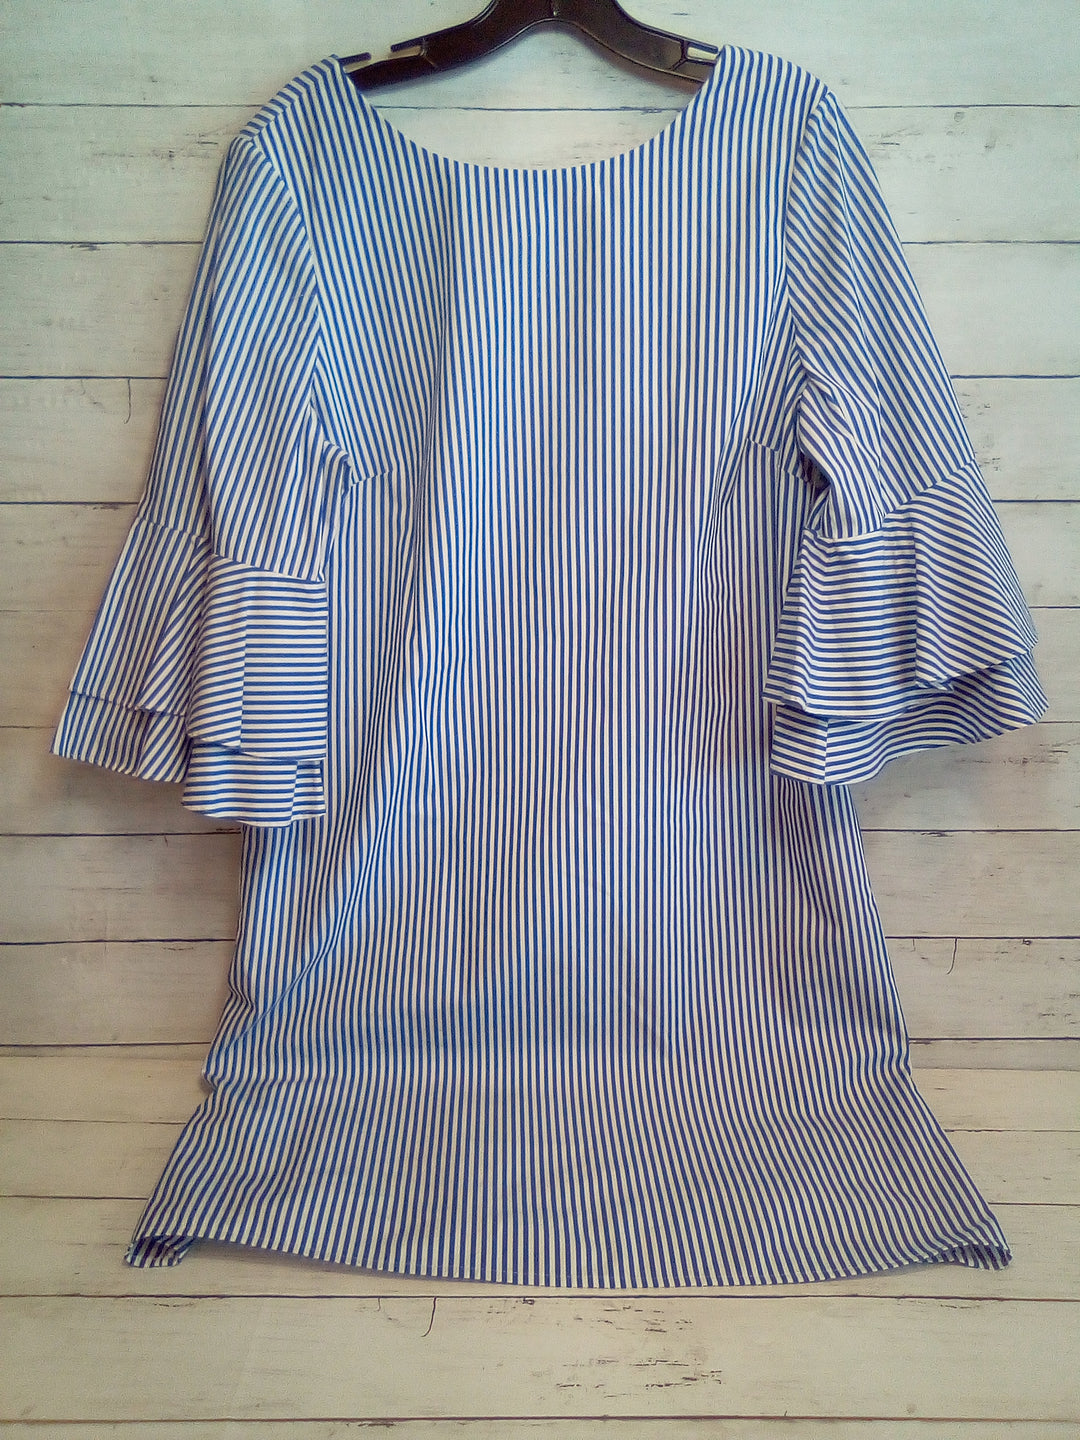 Primary Photo - BRAND: NINE WEST APPAREL <BR>STYLE: DRESS SHORT LONG SLEEVE <BR>COLOR: STRIPED <BR>SIZE: L <BR>OTHER INFO: BLUE/WHITE <BR>SKU: 216-21644-14783